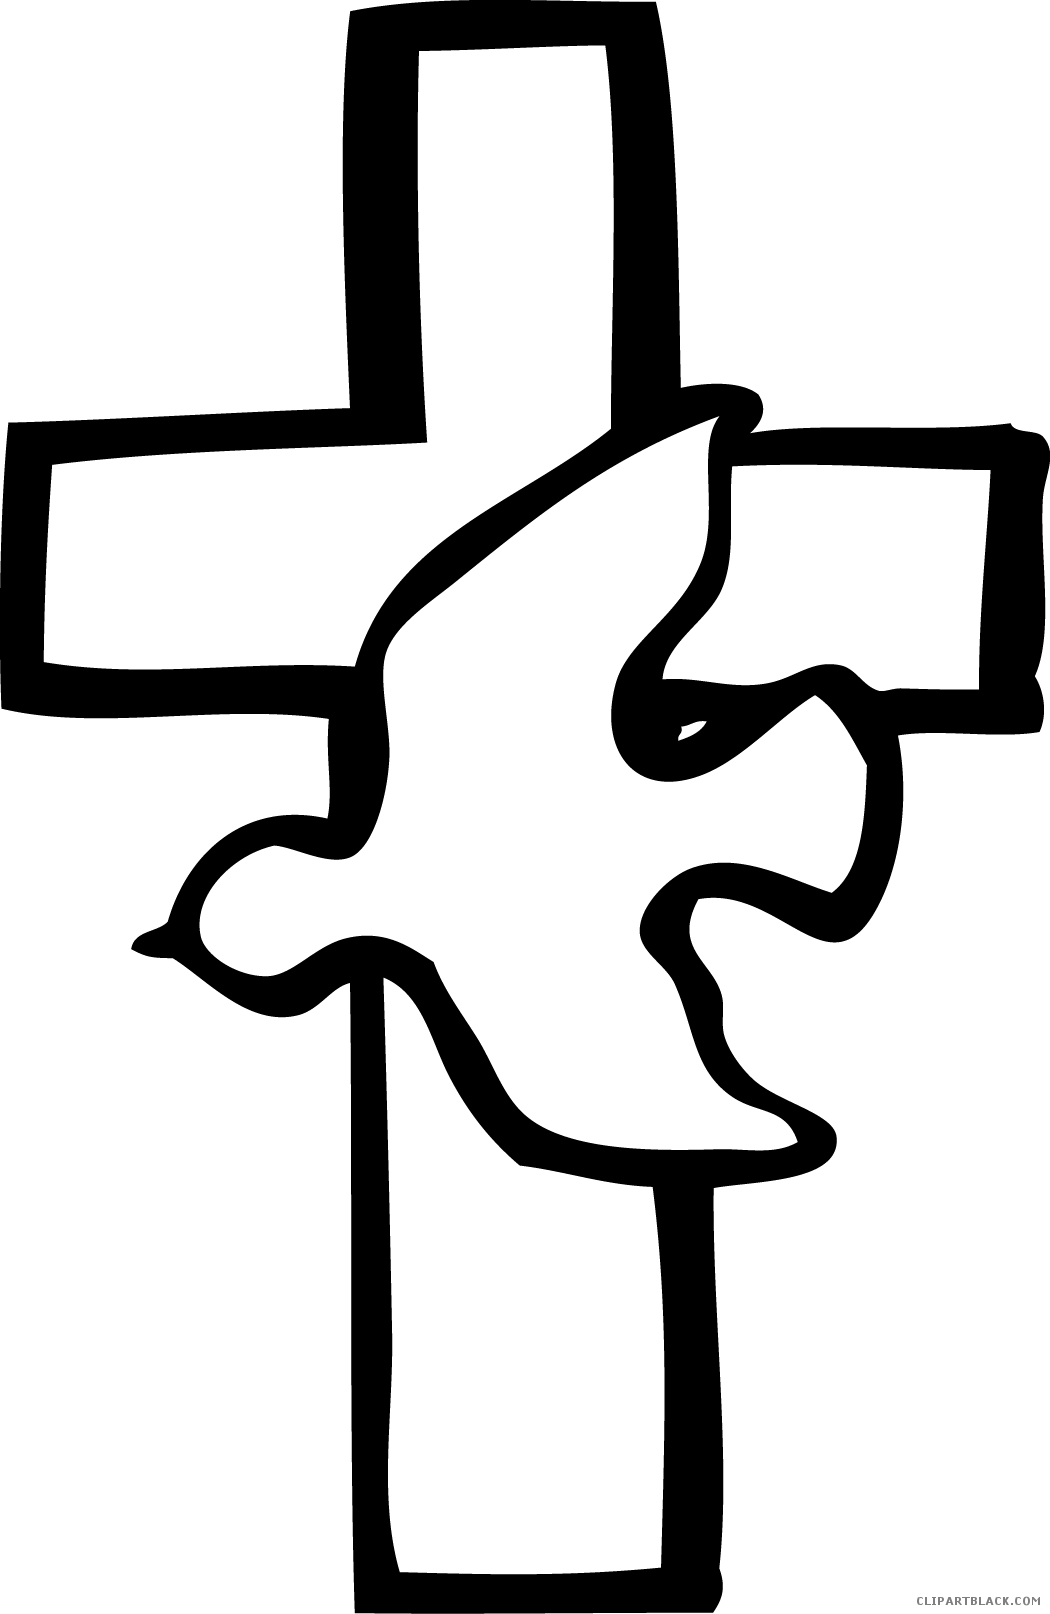 Small cross clipart black and white jpg free Cross Dove Clipart - ClipartBlack.com jpg free